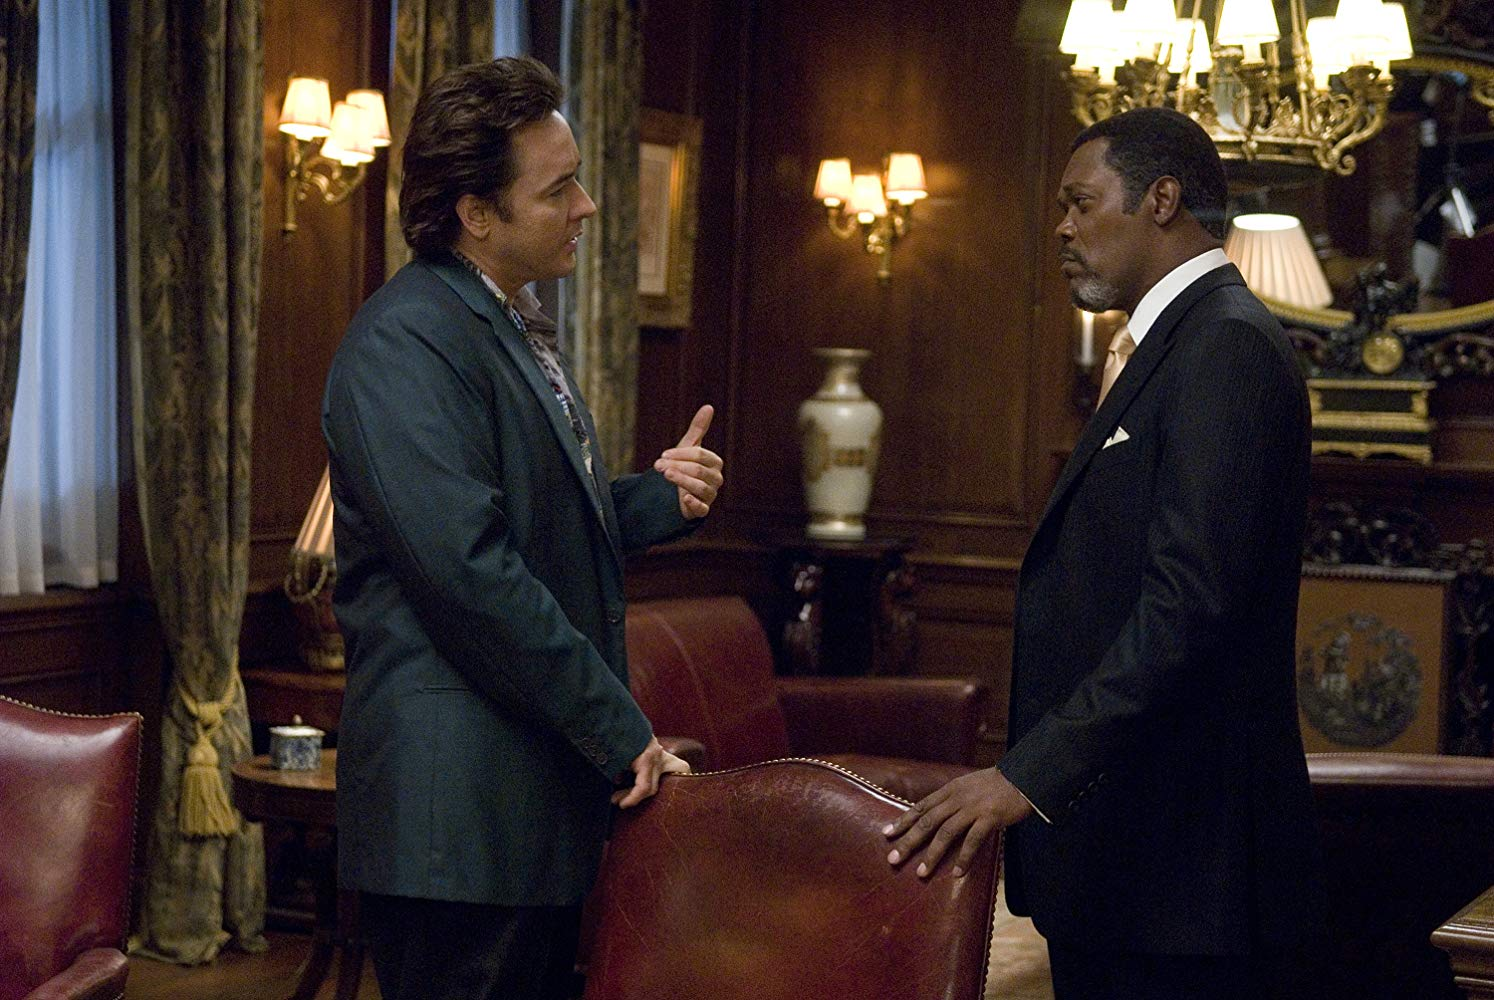 Ghost hunter John Cusack and hotel manager Samuel L. Jackson in 1408 (2007)